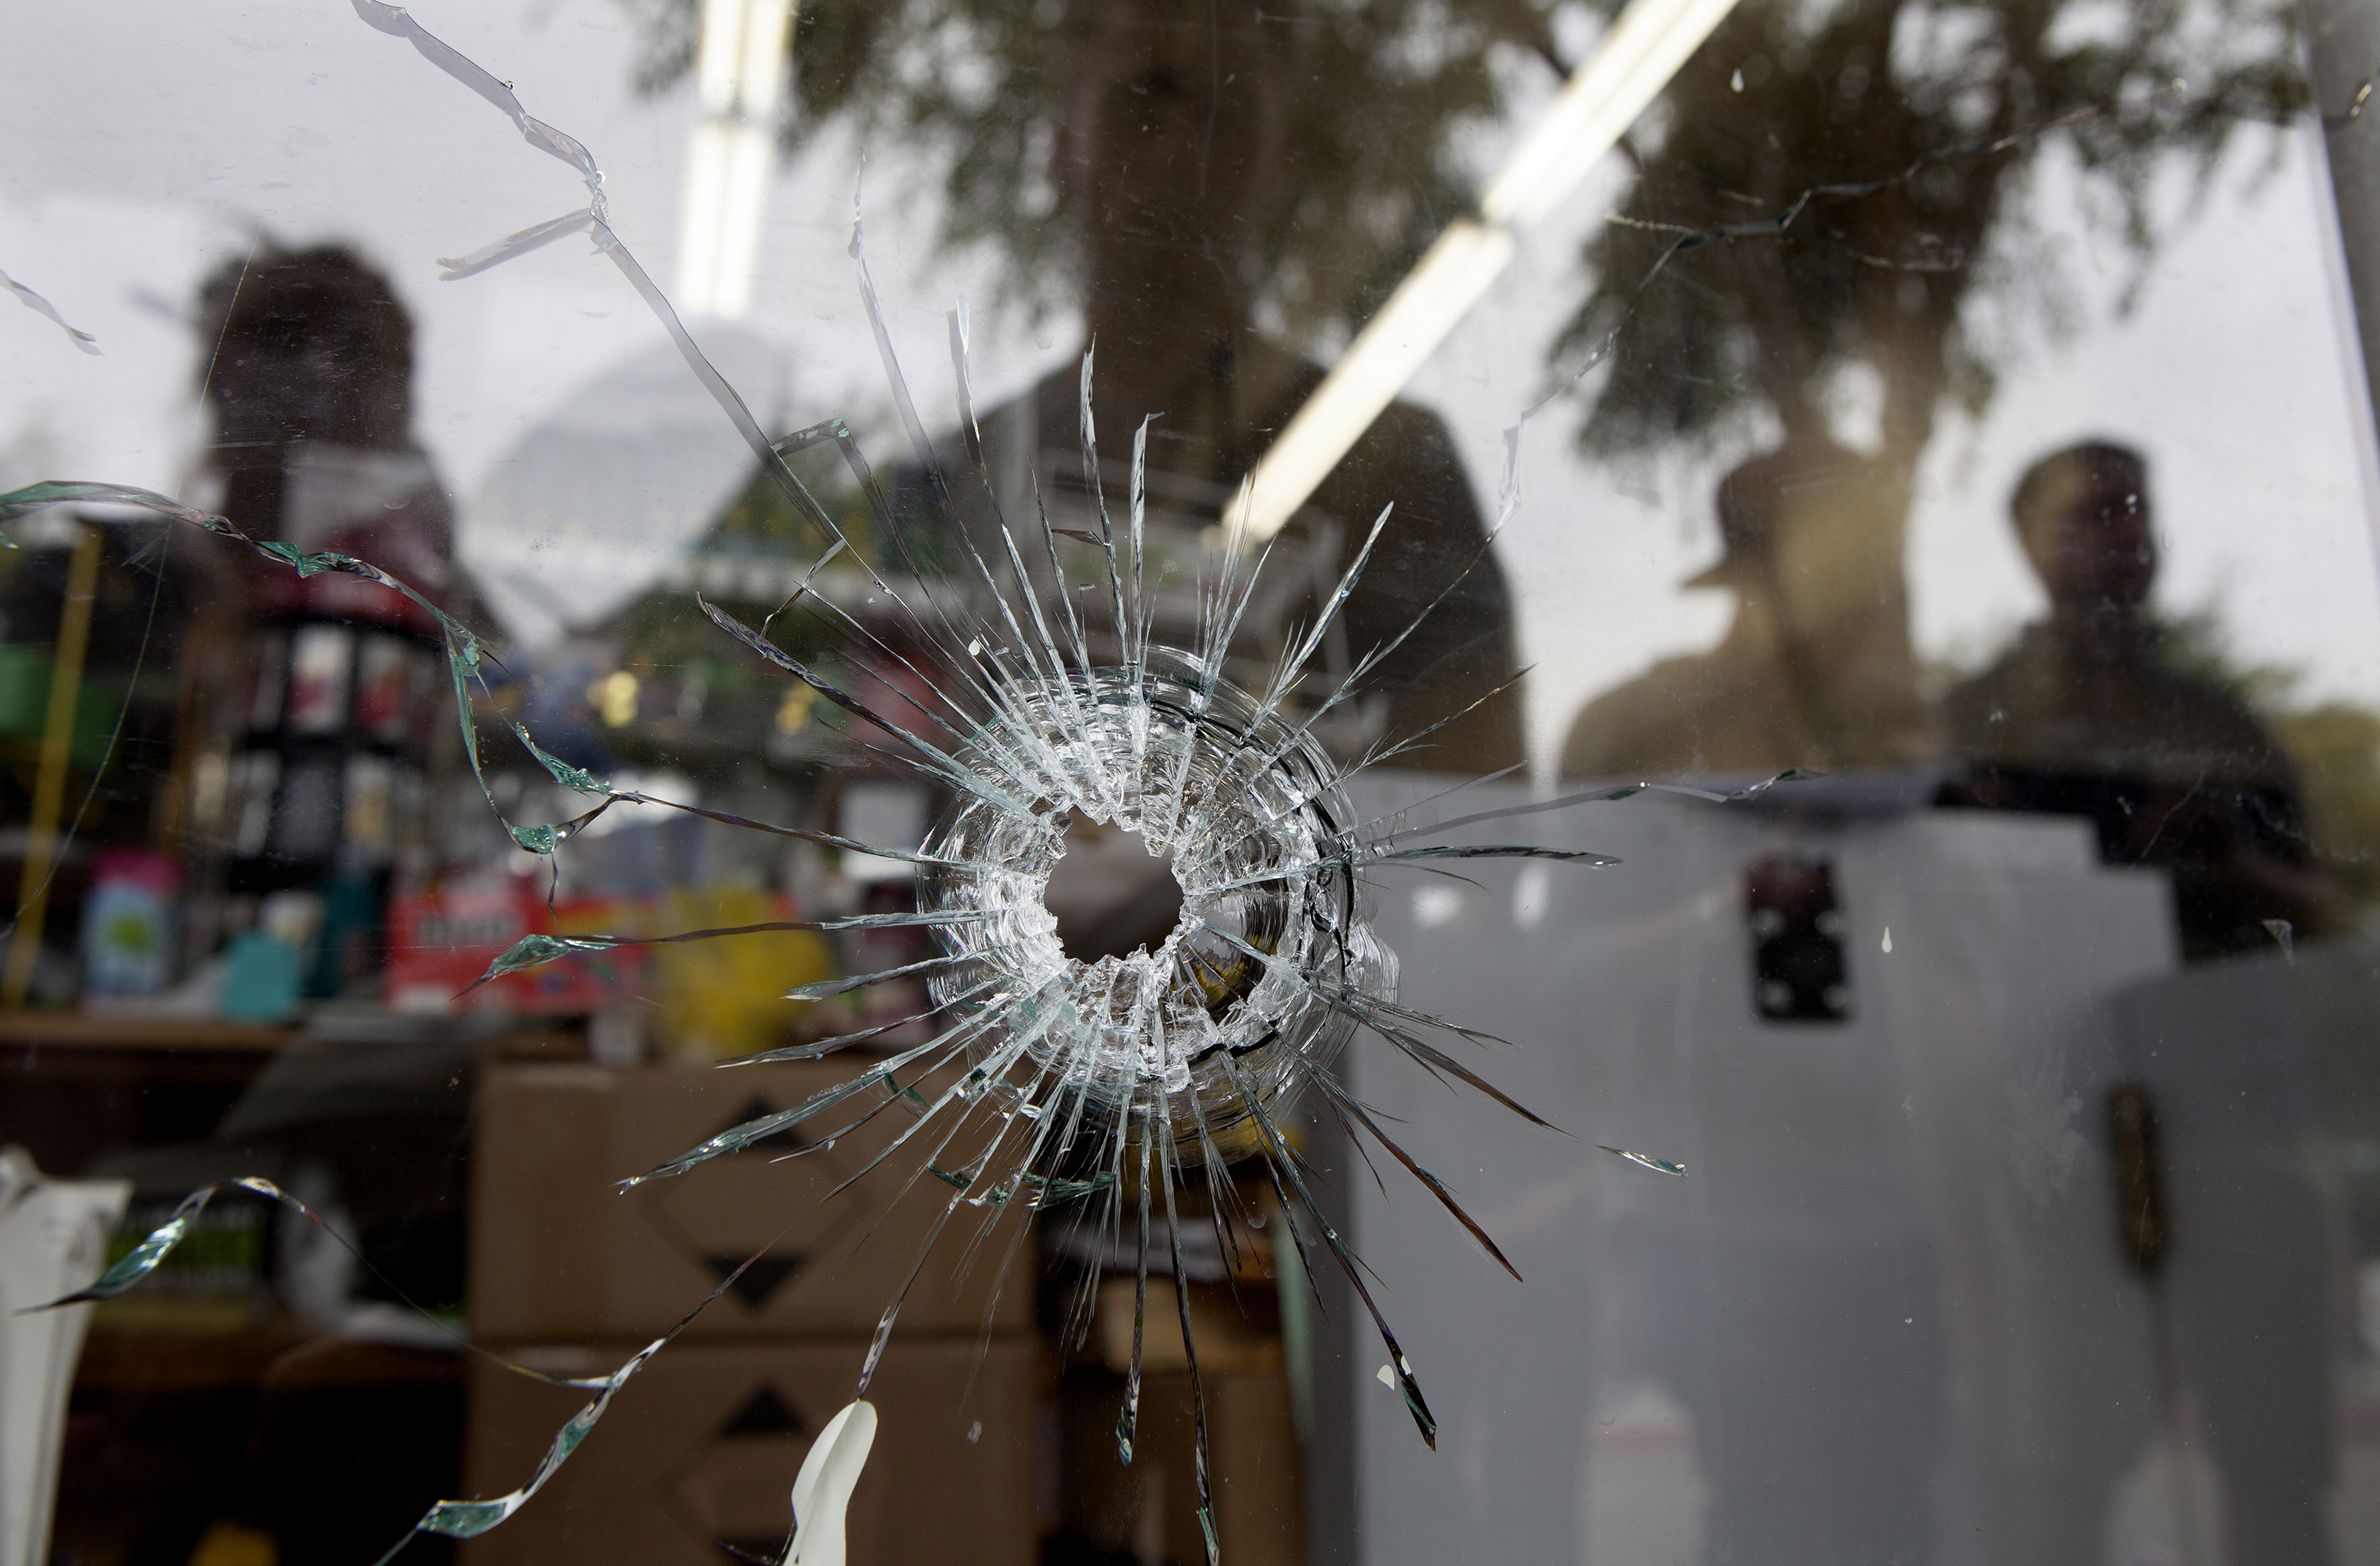 Bullet holes in the IV Deli Mart, one of several crime scenes Saturday, May 24, 2014. (Spencer Weiner/Getty Images)